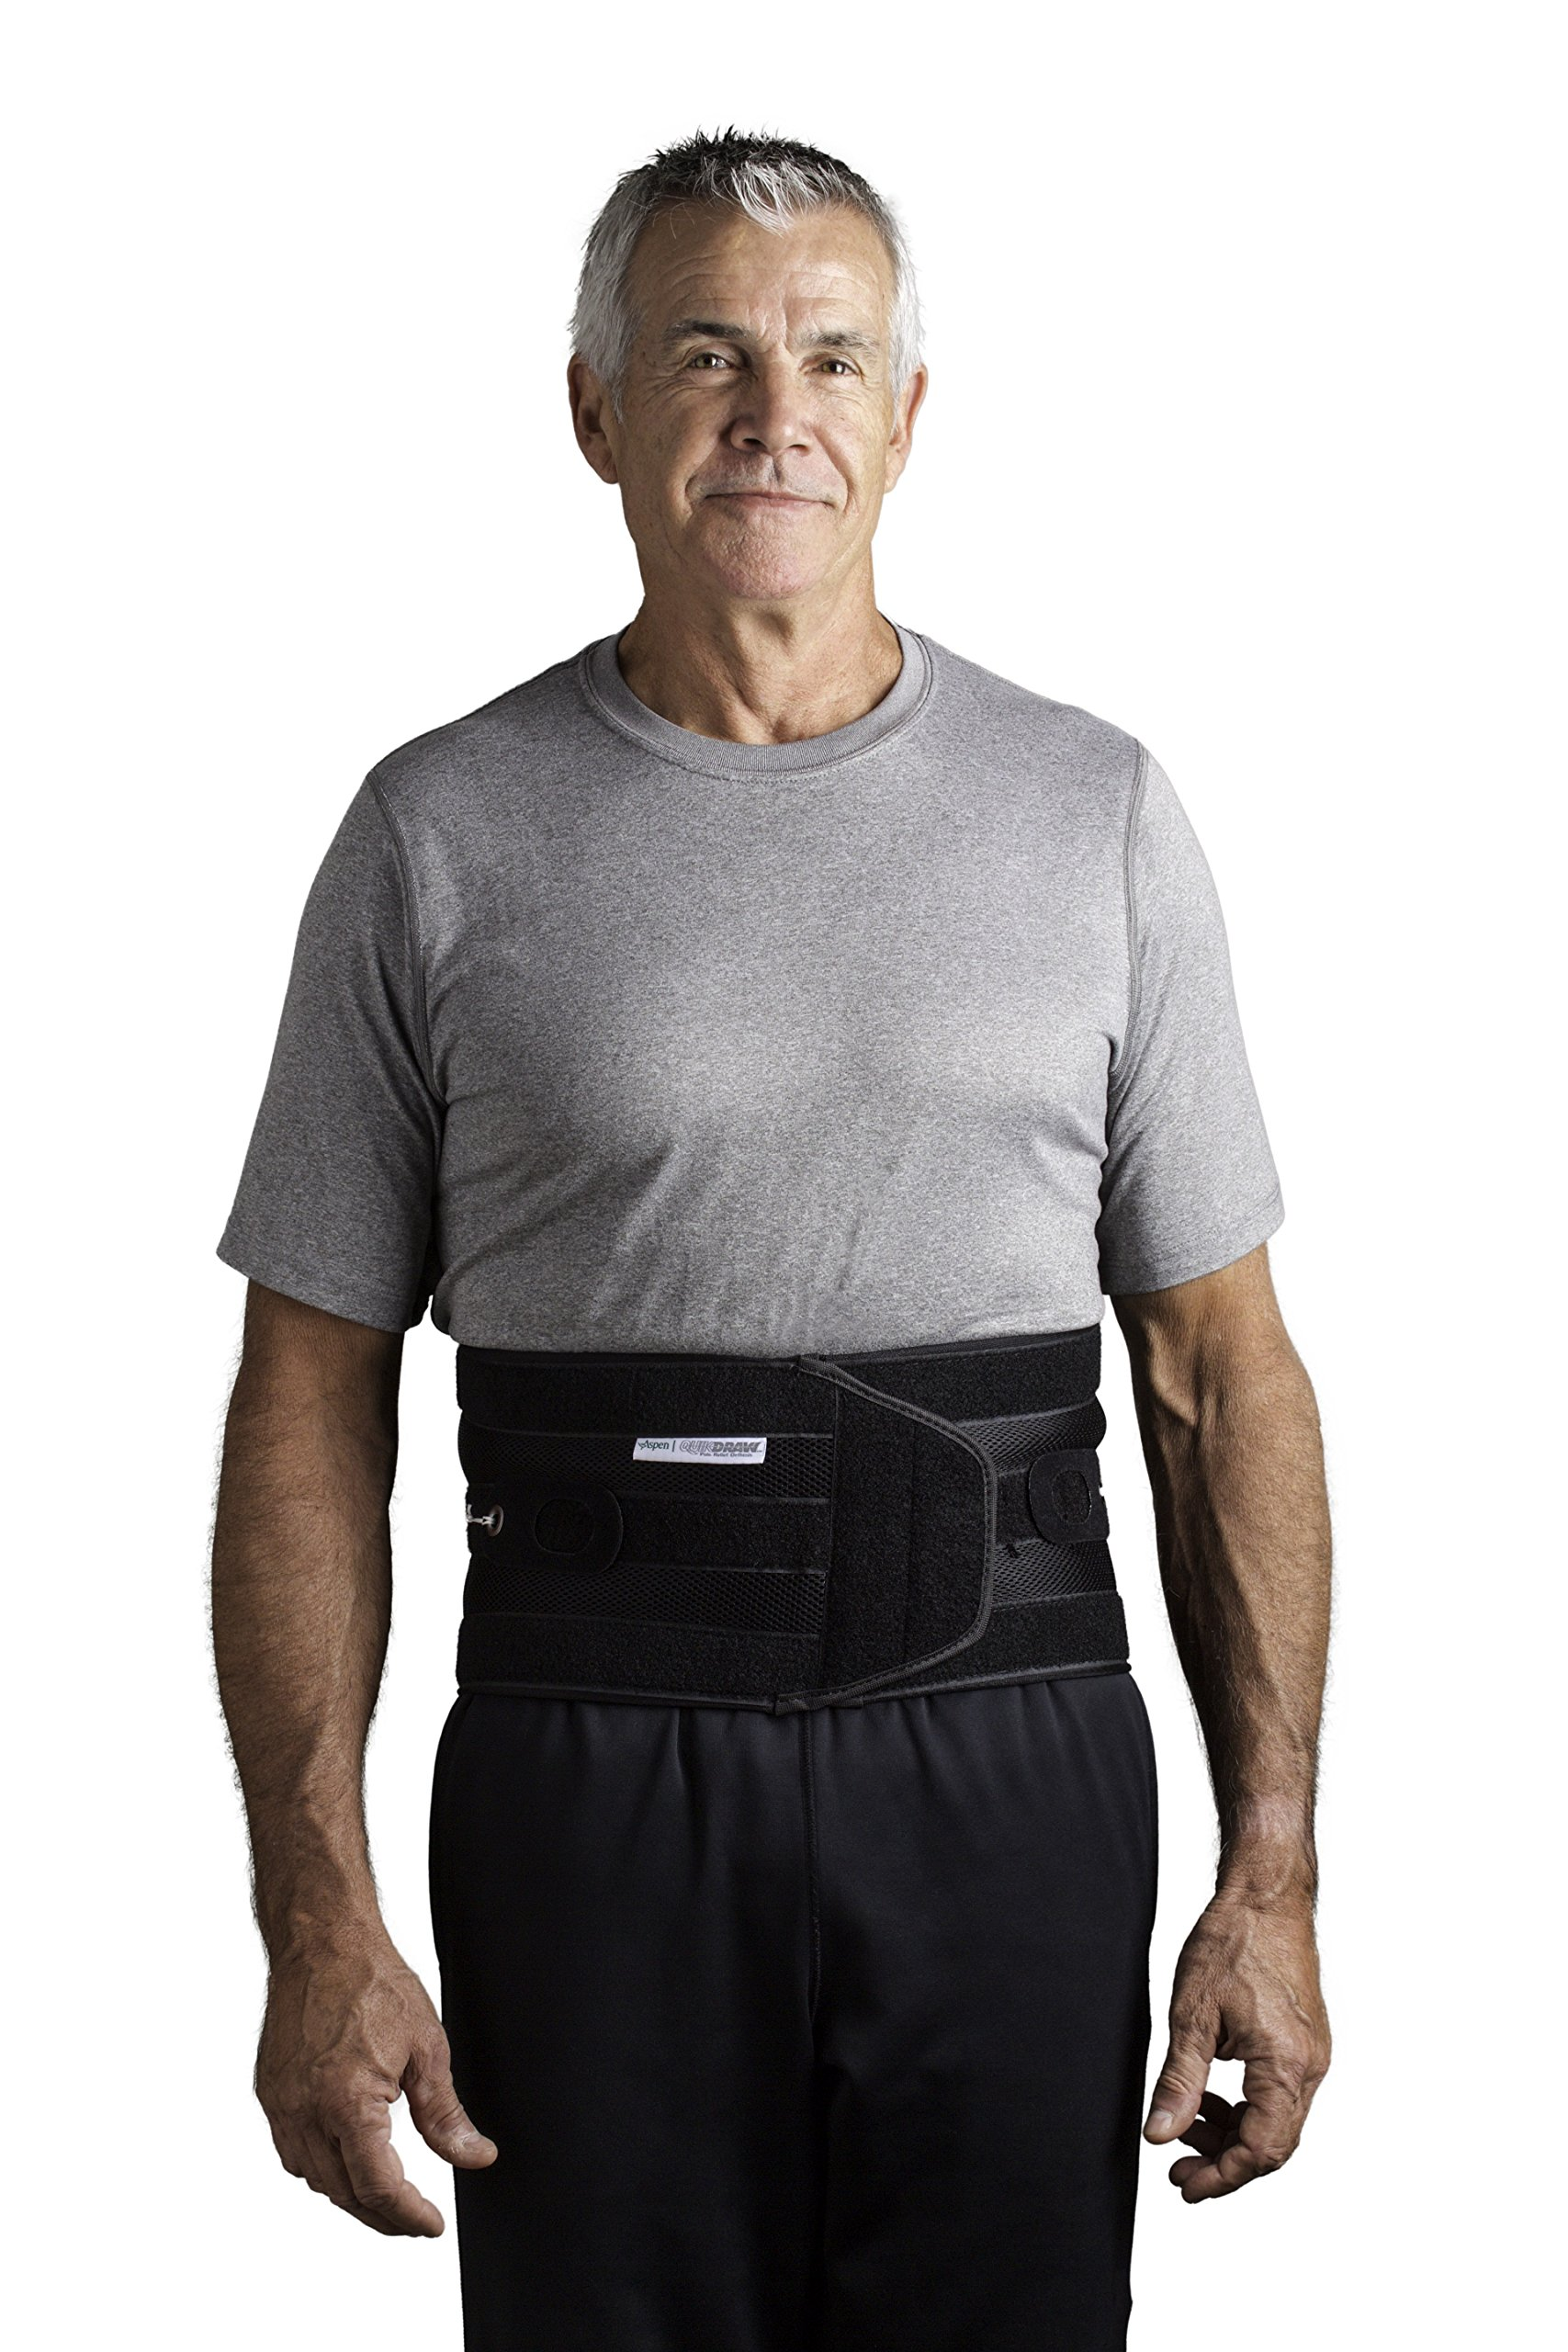 Aspen Quickdraw Pro Back Brace, Black Large (36-42 inches) Waist